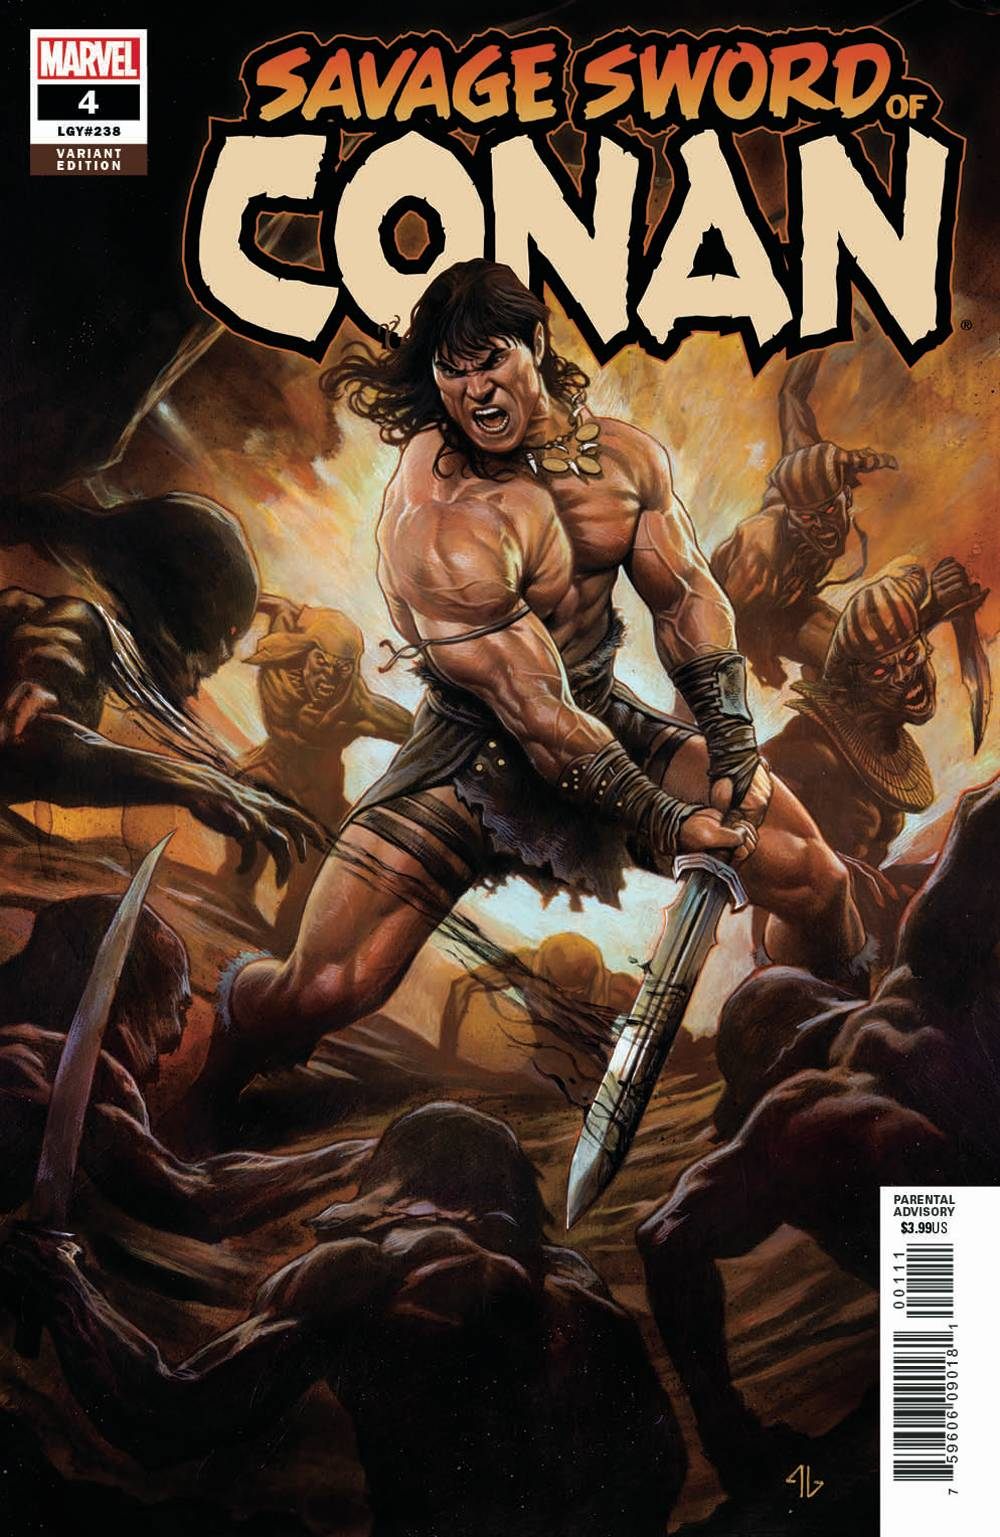 04/10/2019 SAVAGE SWORD OF CONAN #4 1:25 GRANOV VAR